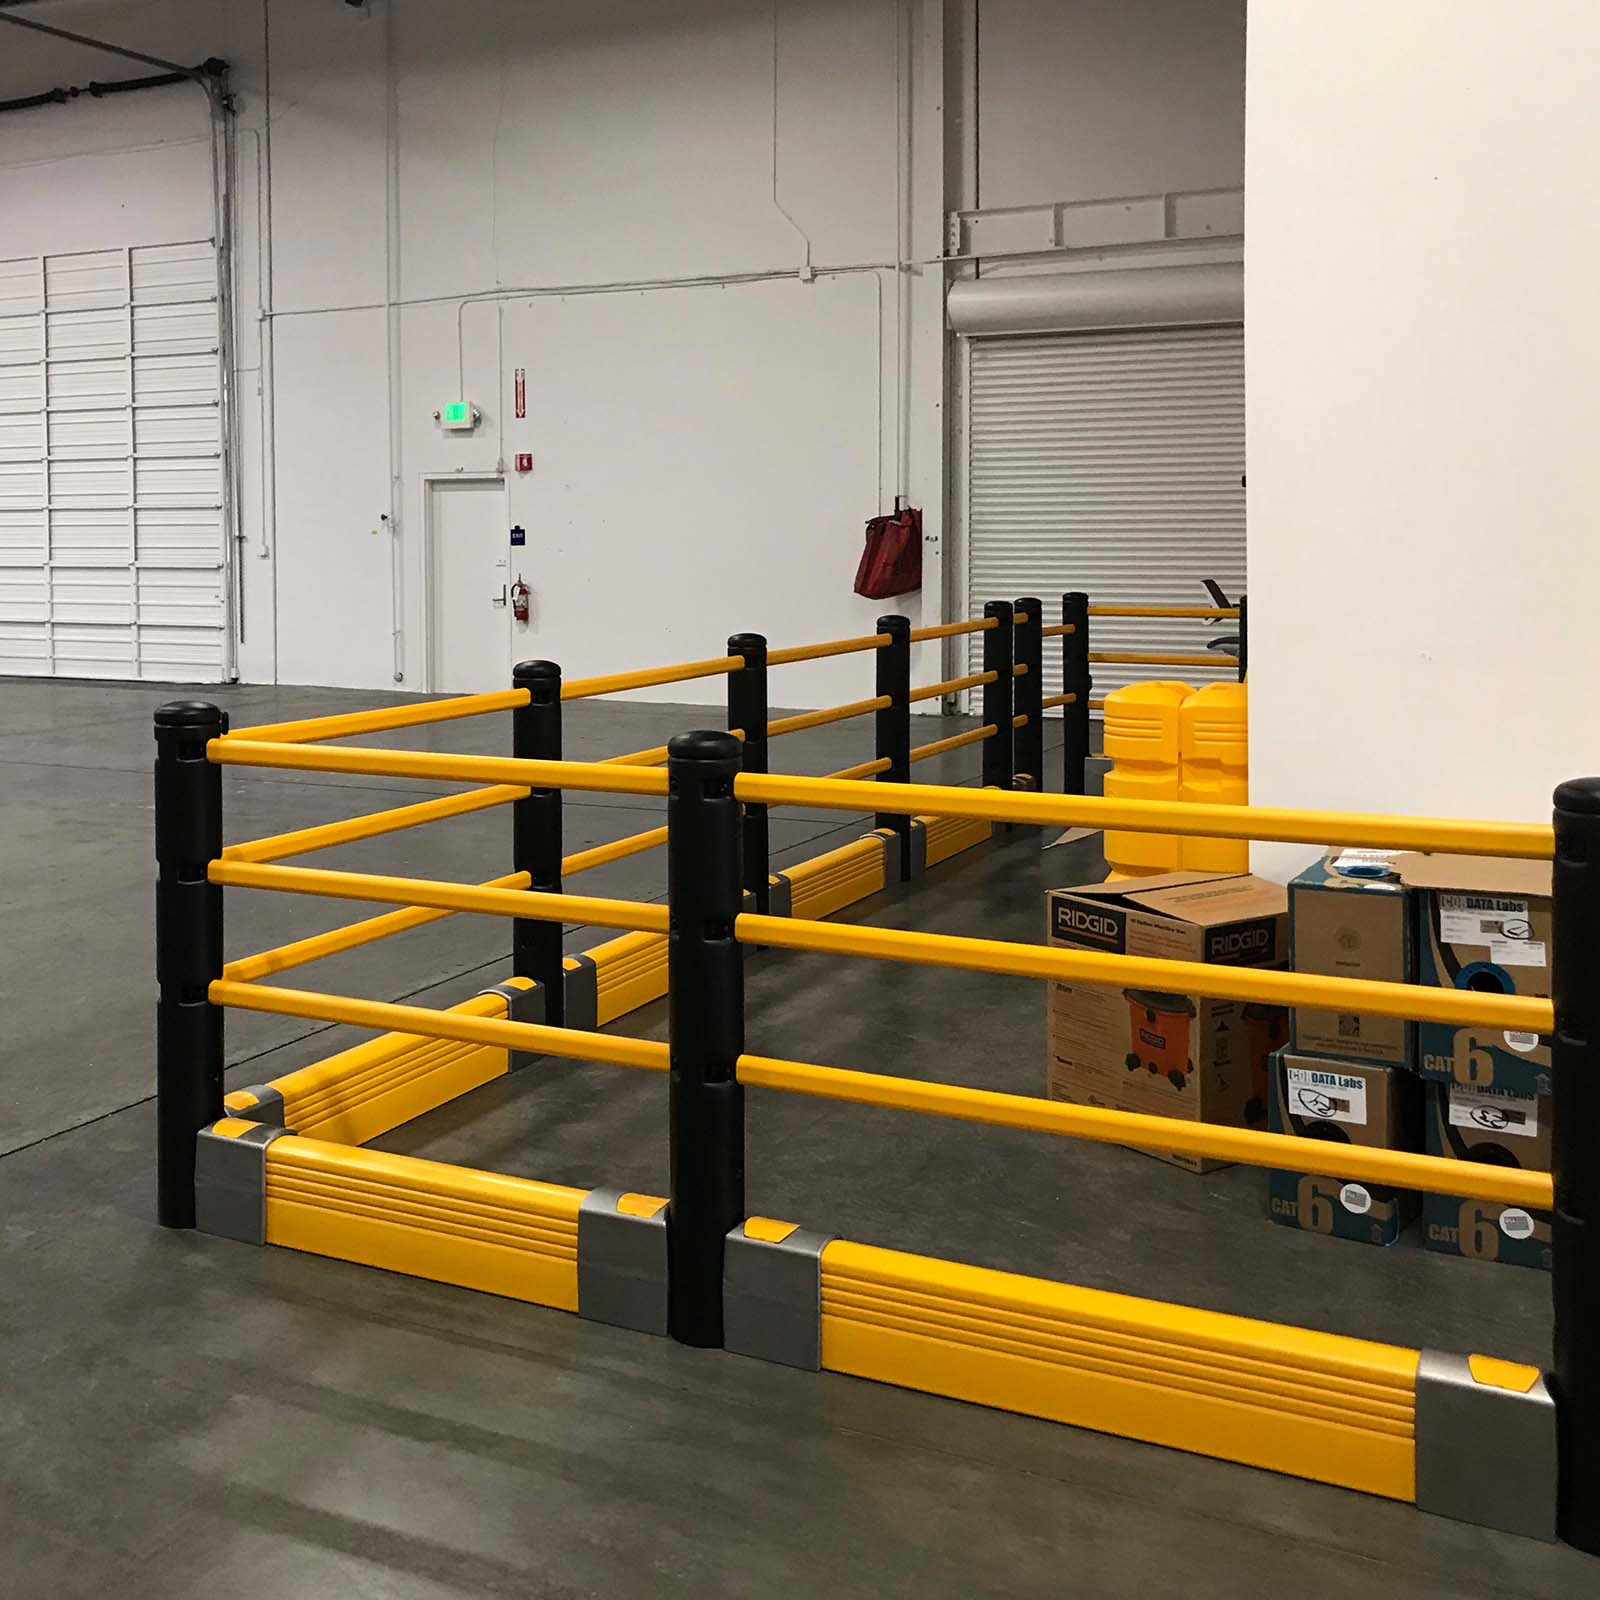 McCue Pedestrian Barrier Safety Protection with Floor Mounted Crash Barrier PLUS in Warehouse